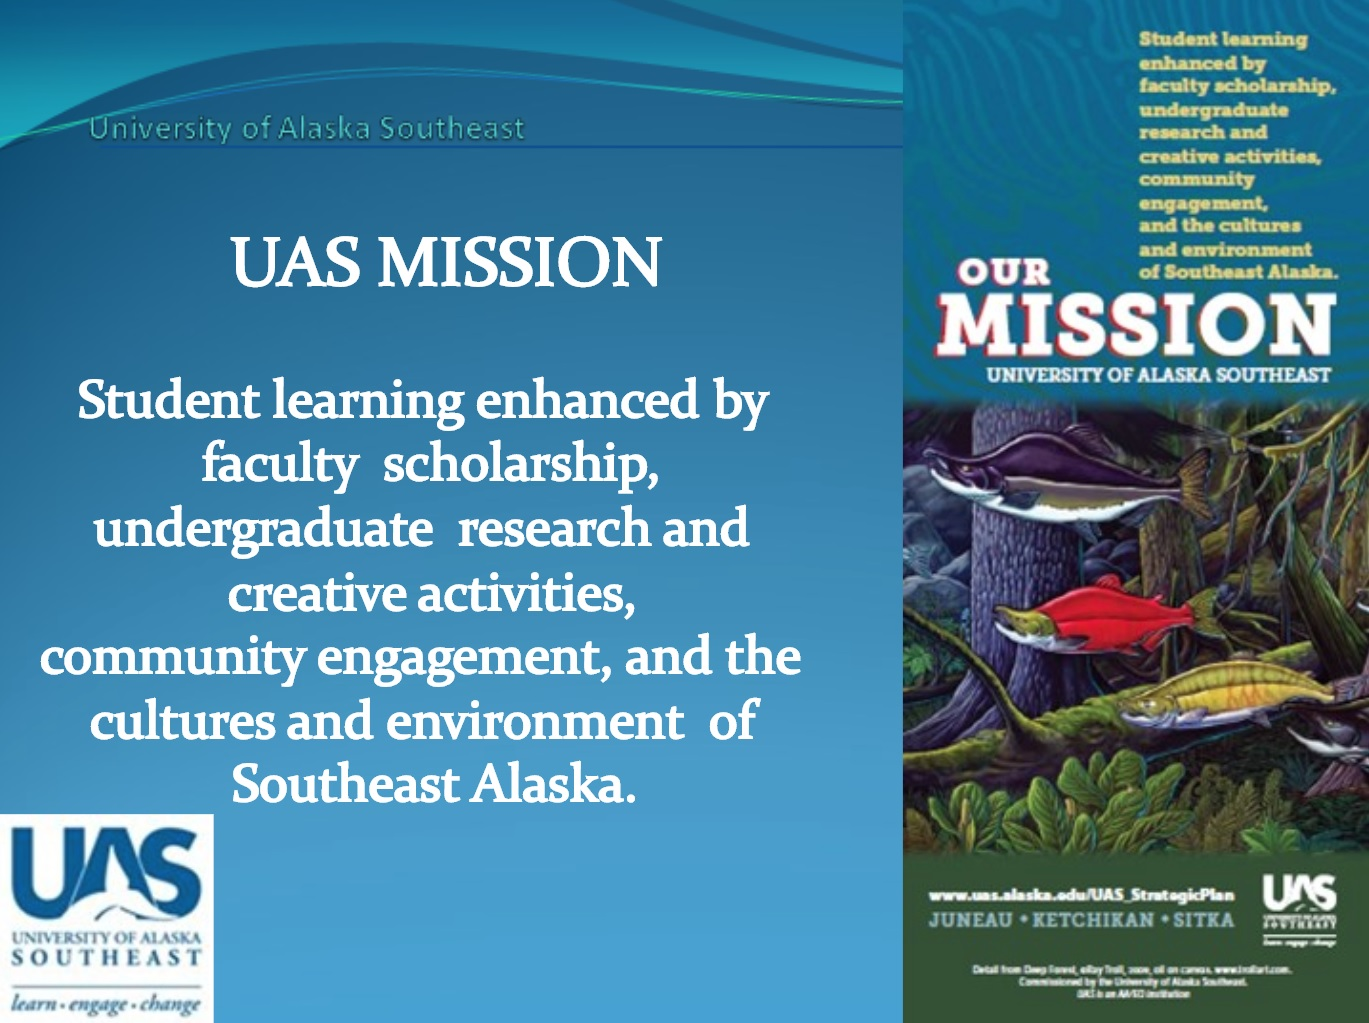 UAS Mission - Student learning enhanced by faculty scholarship, undergraduate research and creative activities, community engagement, and the cultures and environment of Southeast Alaska.